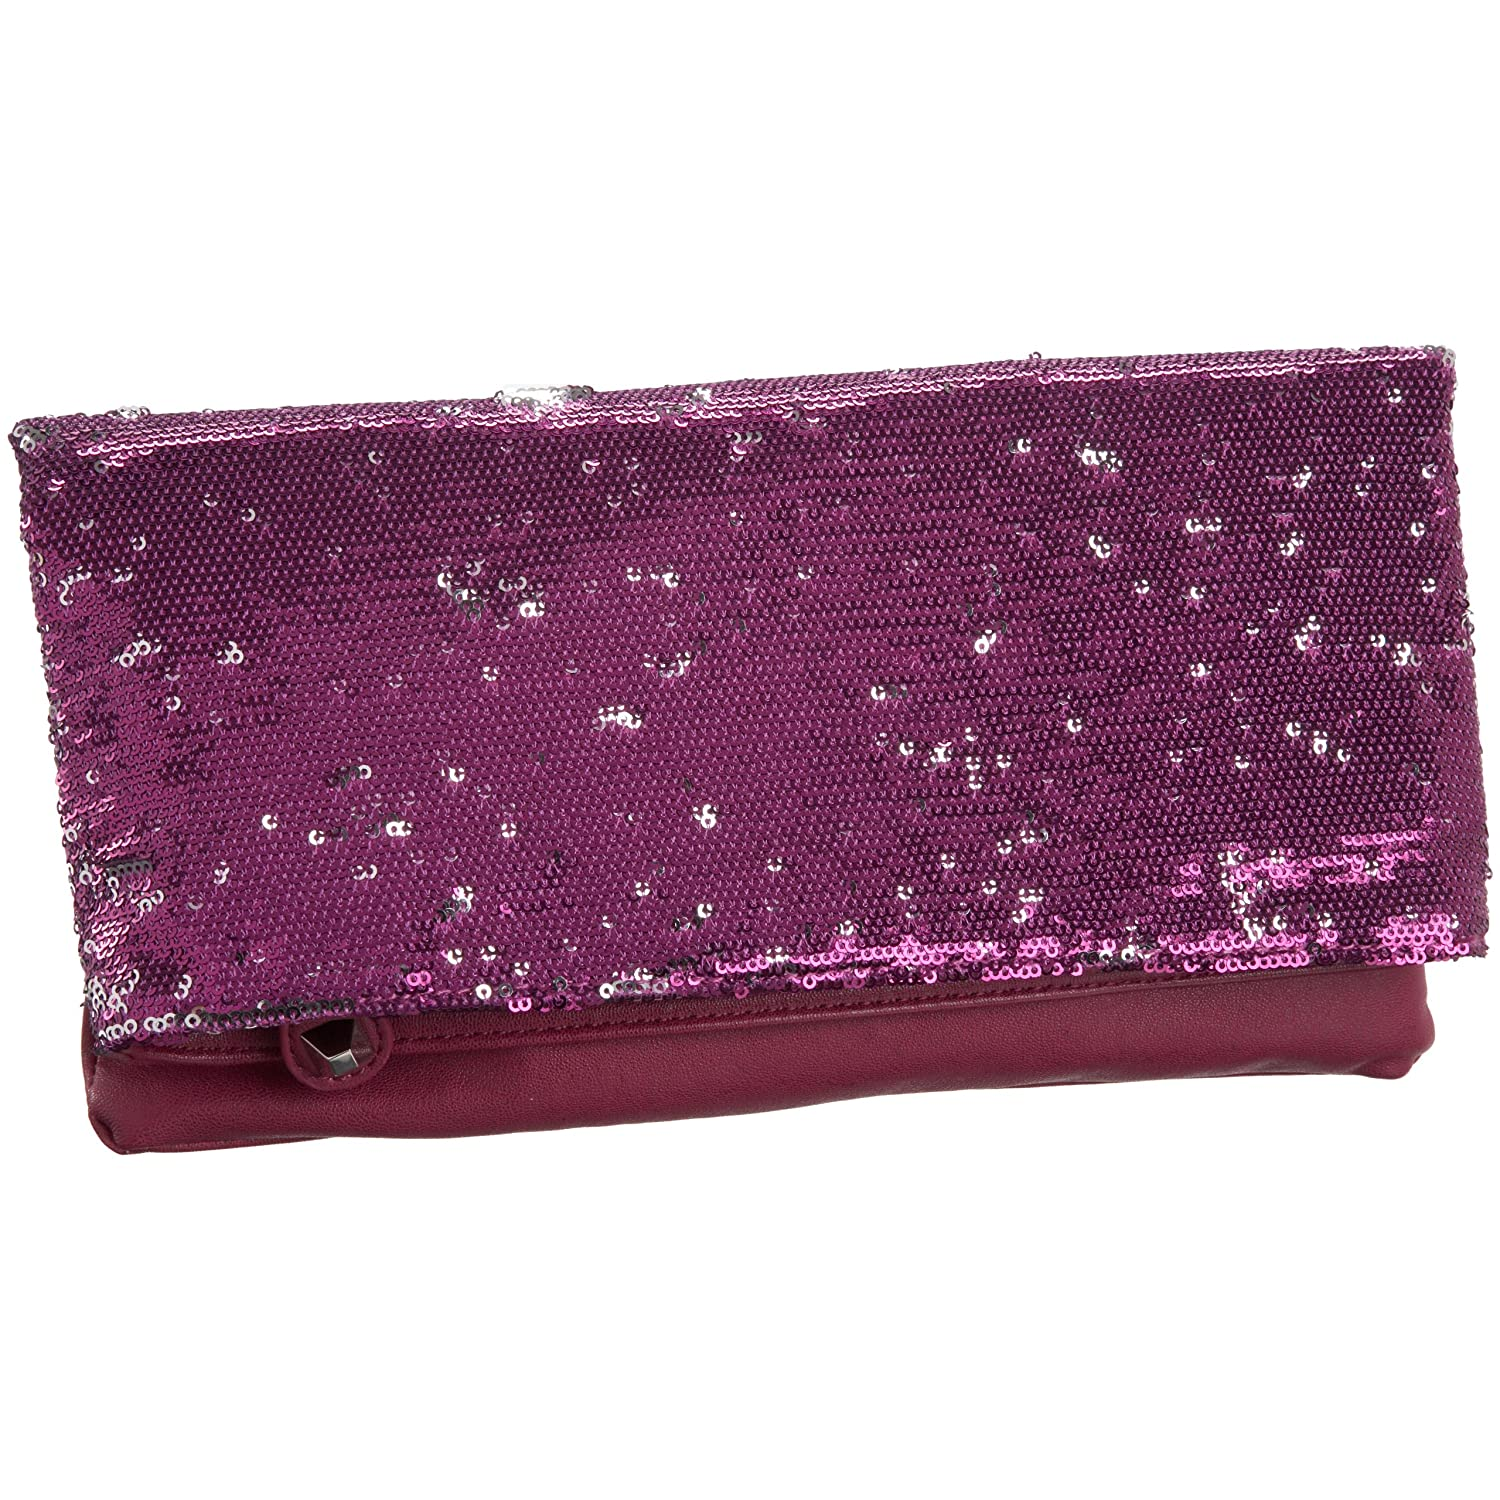 BCBGeneration Molly Sequined Fold Over Clutch from endless.com